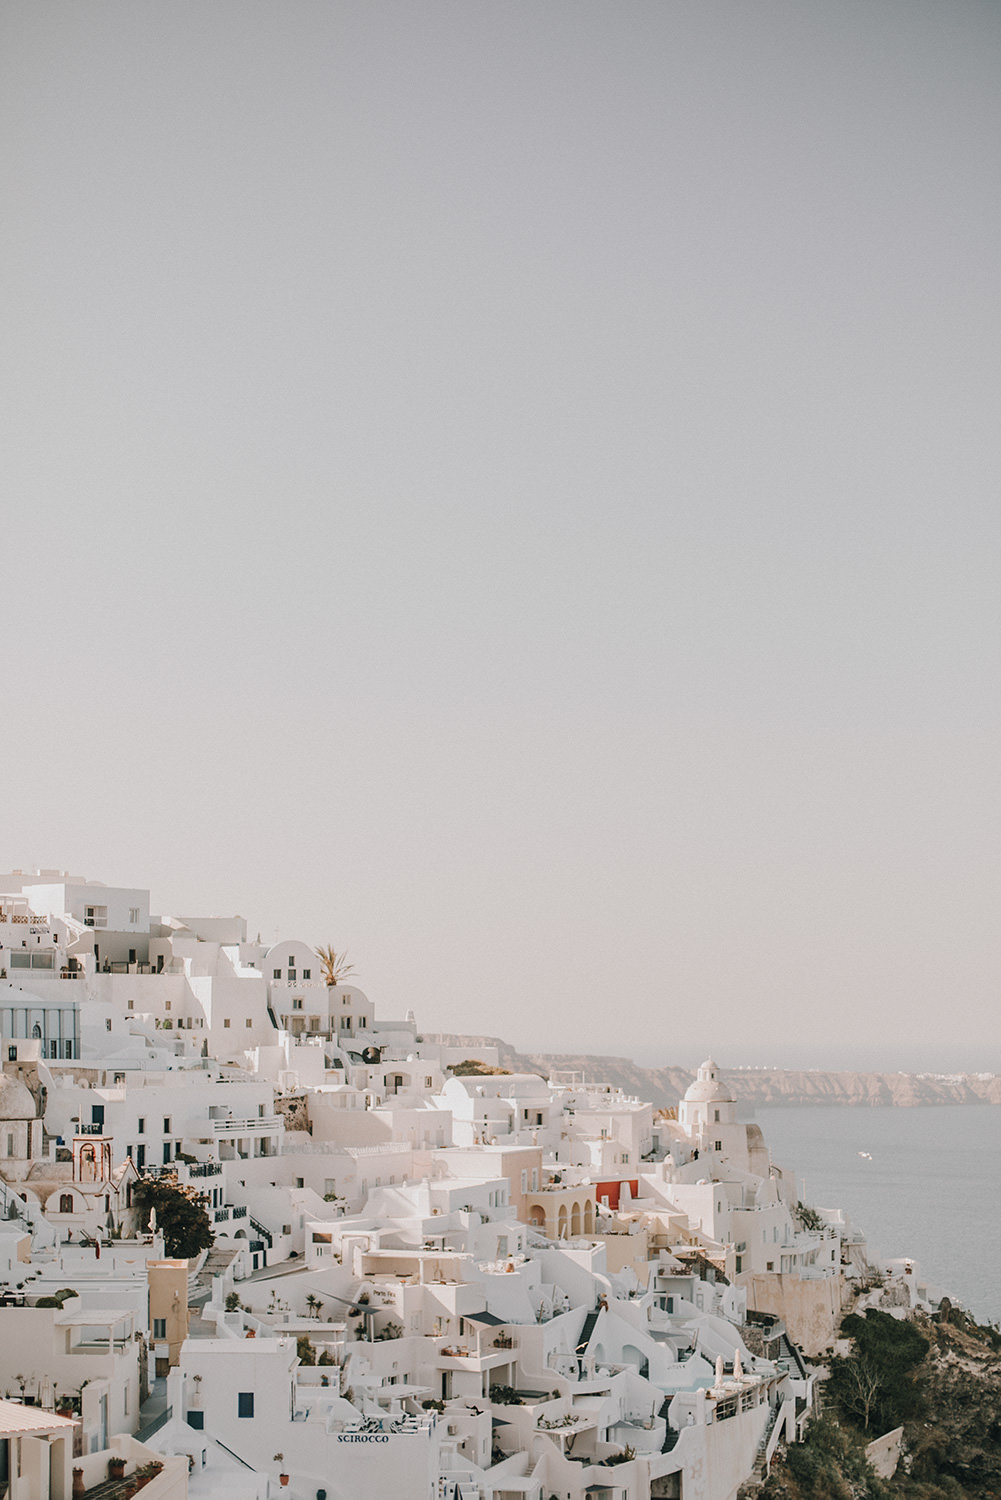 weddingphotographer-santorini-hochzeitsfotograf-santorin-weddingphoto-destination-wedding-elopement-fira